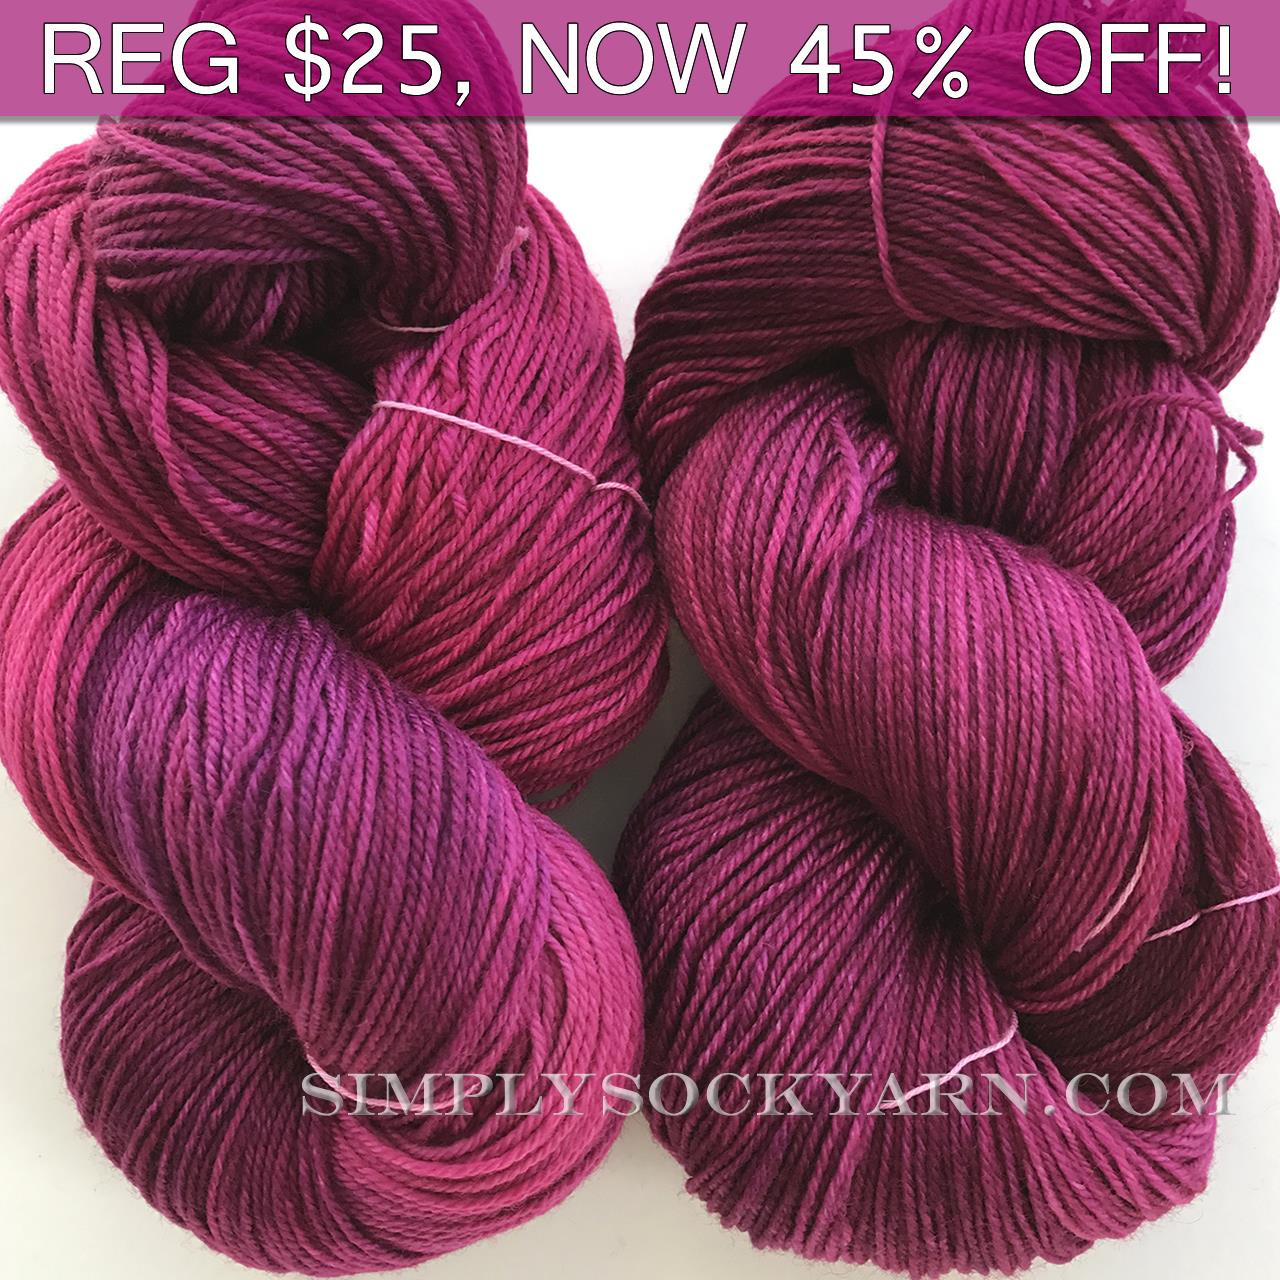 MWP Sock 120g Radiant Orchid -